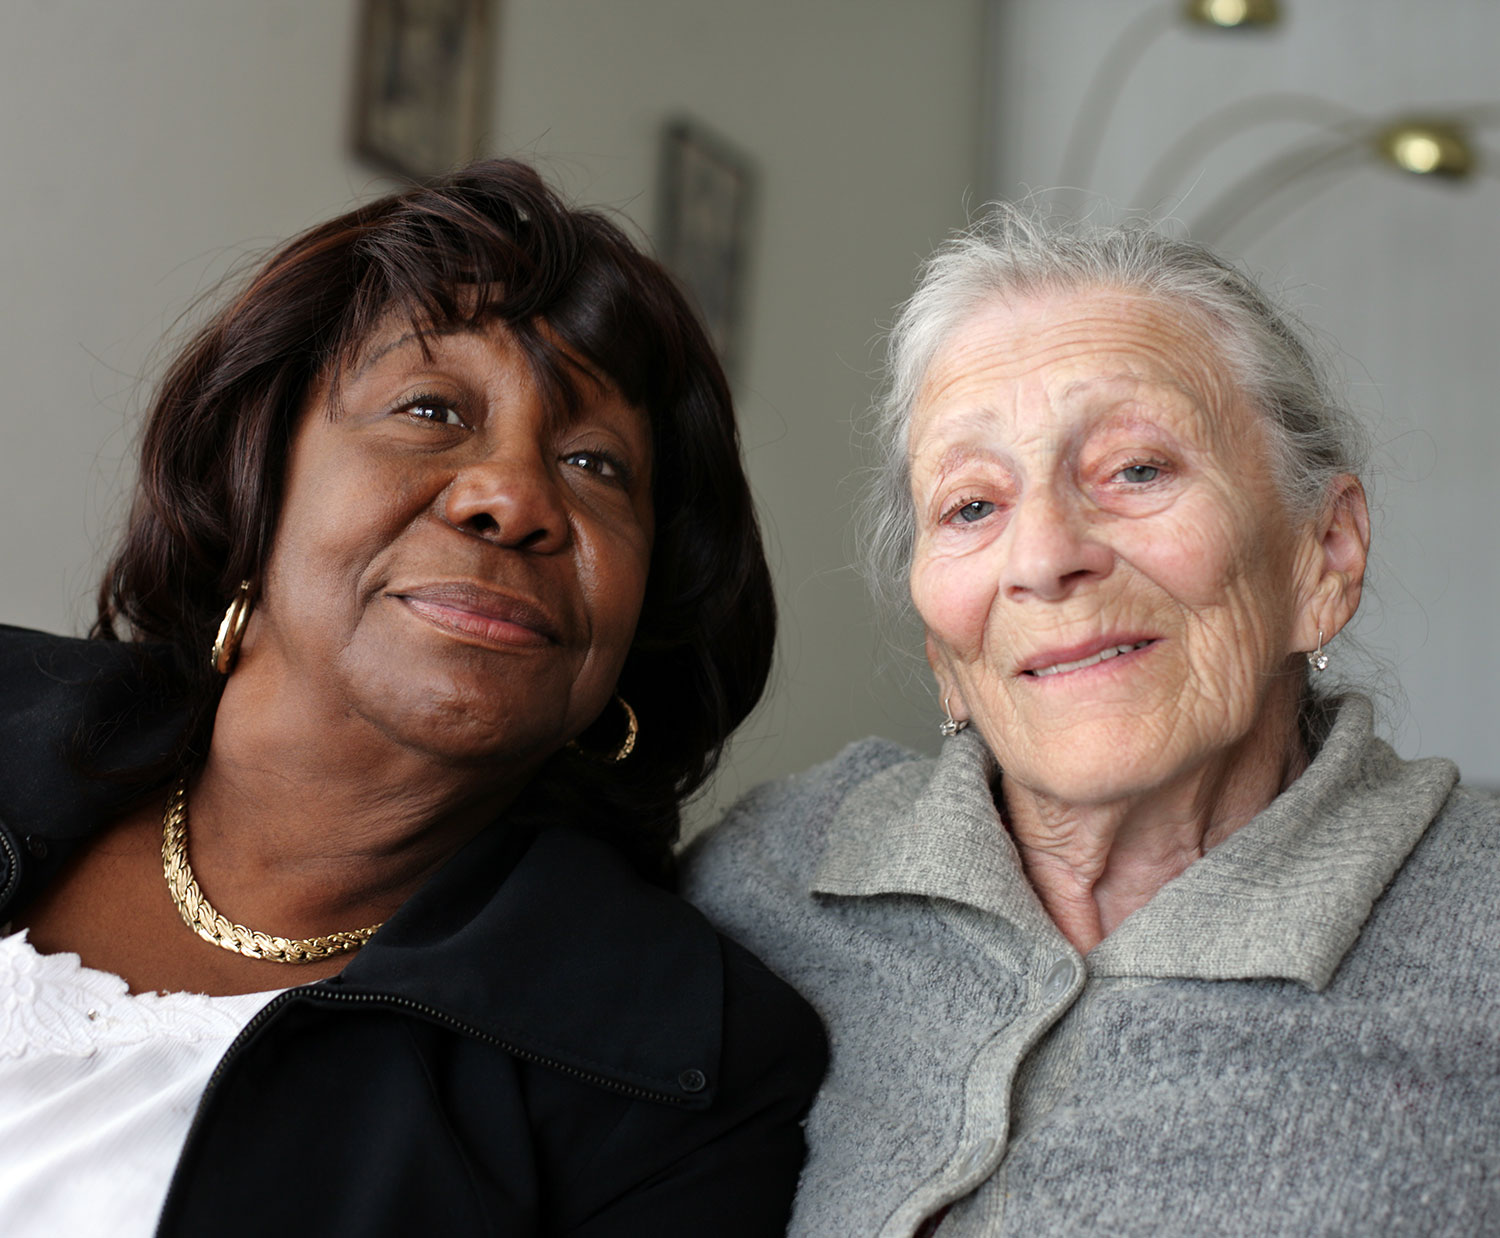 Afro woman with old woman